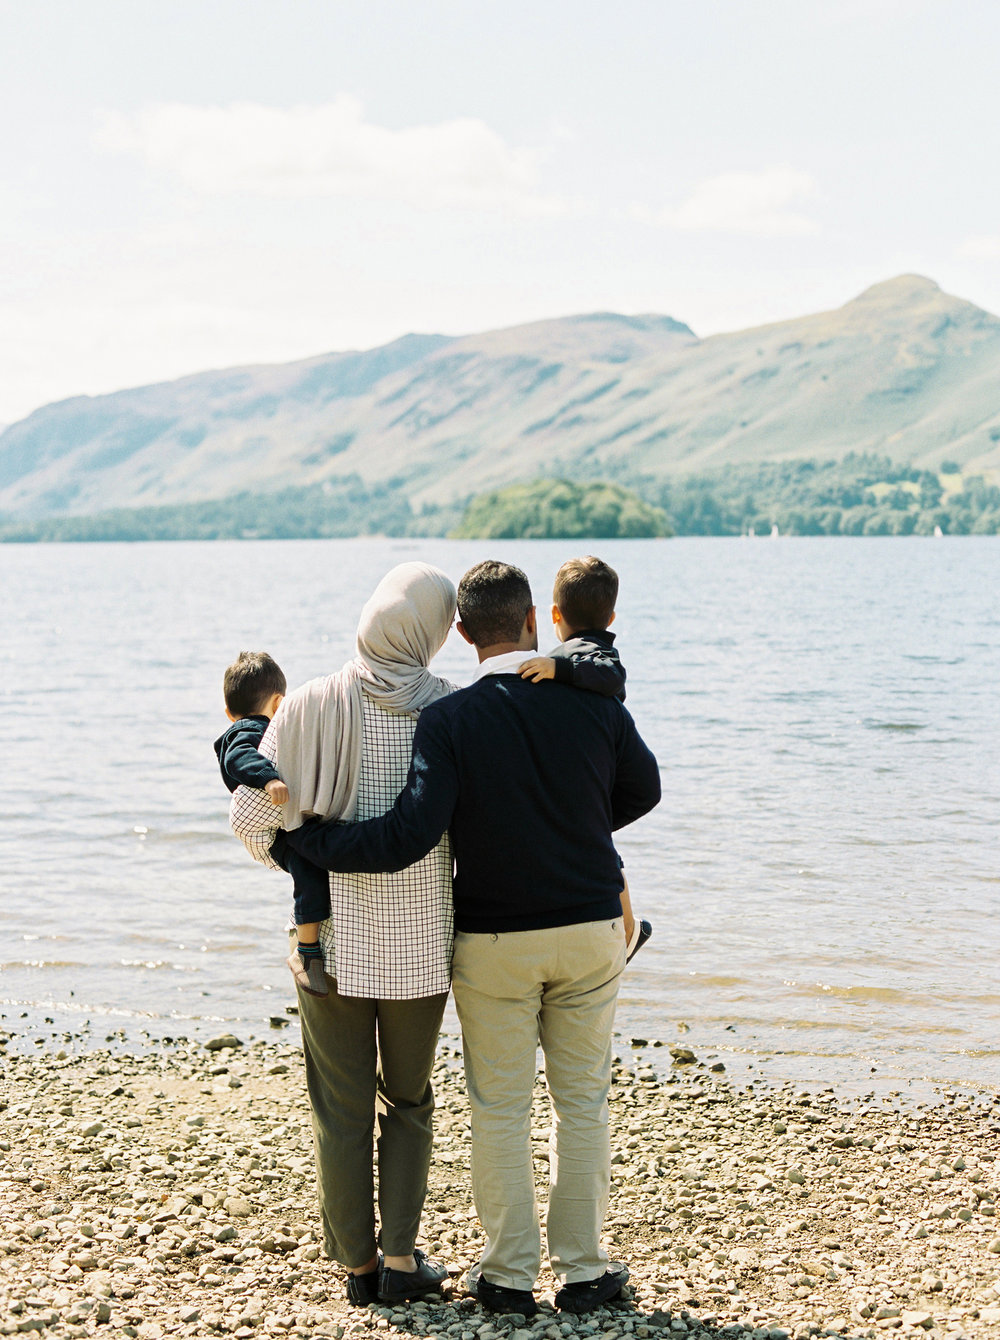 Keswick family shoot | Lake District - Amani was on holiday in the Lake District and wanted some photos to document her stay with her young family in this beautiful part of the world.